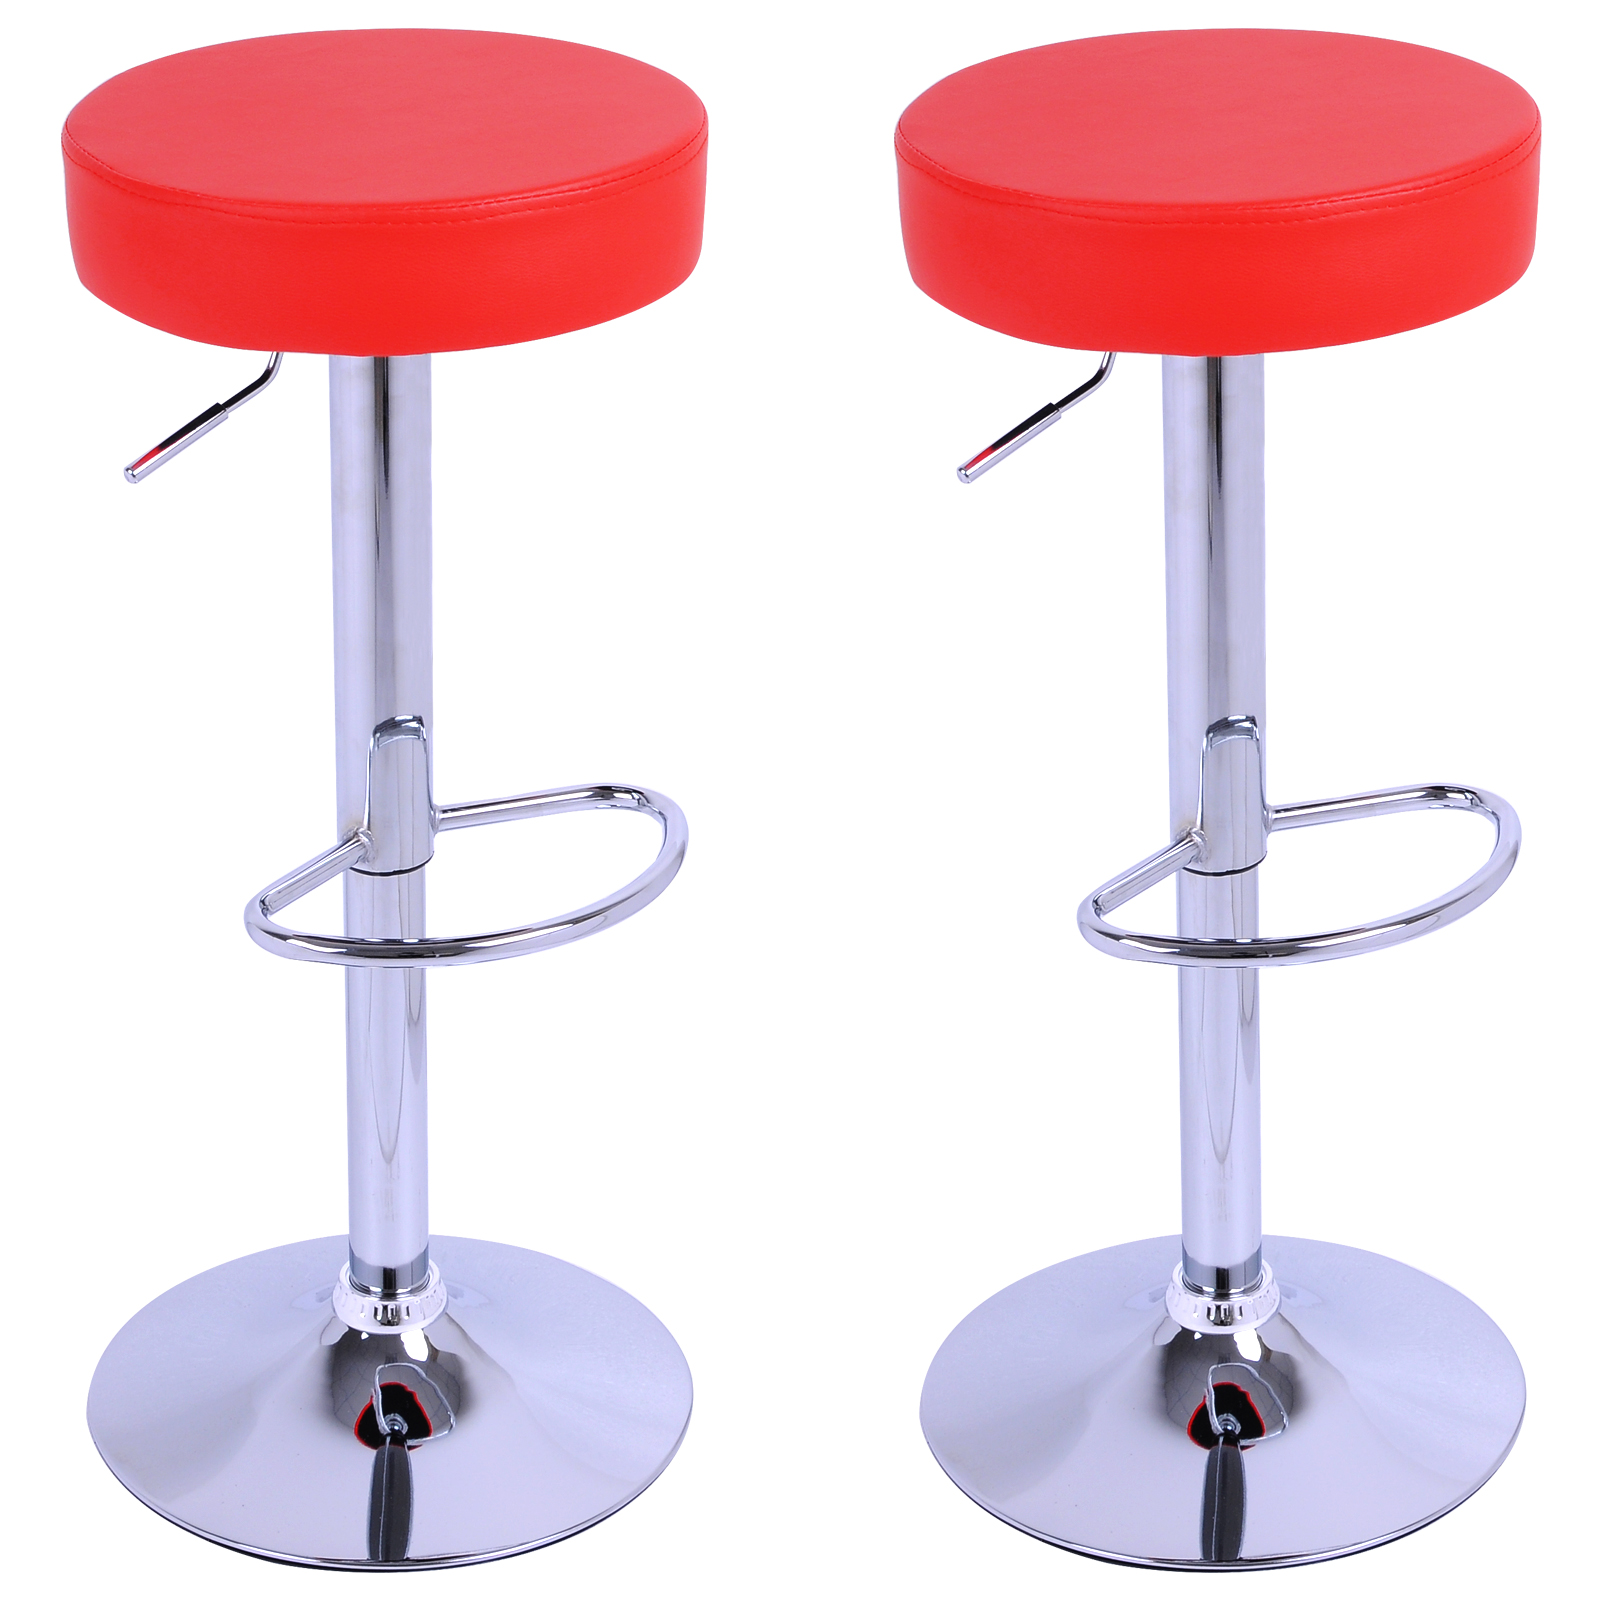 Kitchen Swivel Bar Stools Bar Stools Set Of 2 Breakfast Kitchen Swivel Stool Chairs